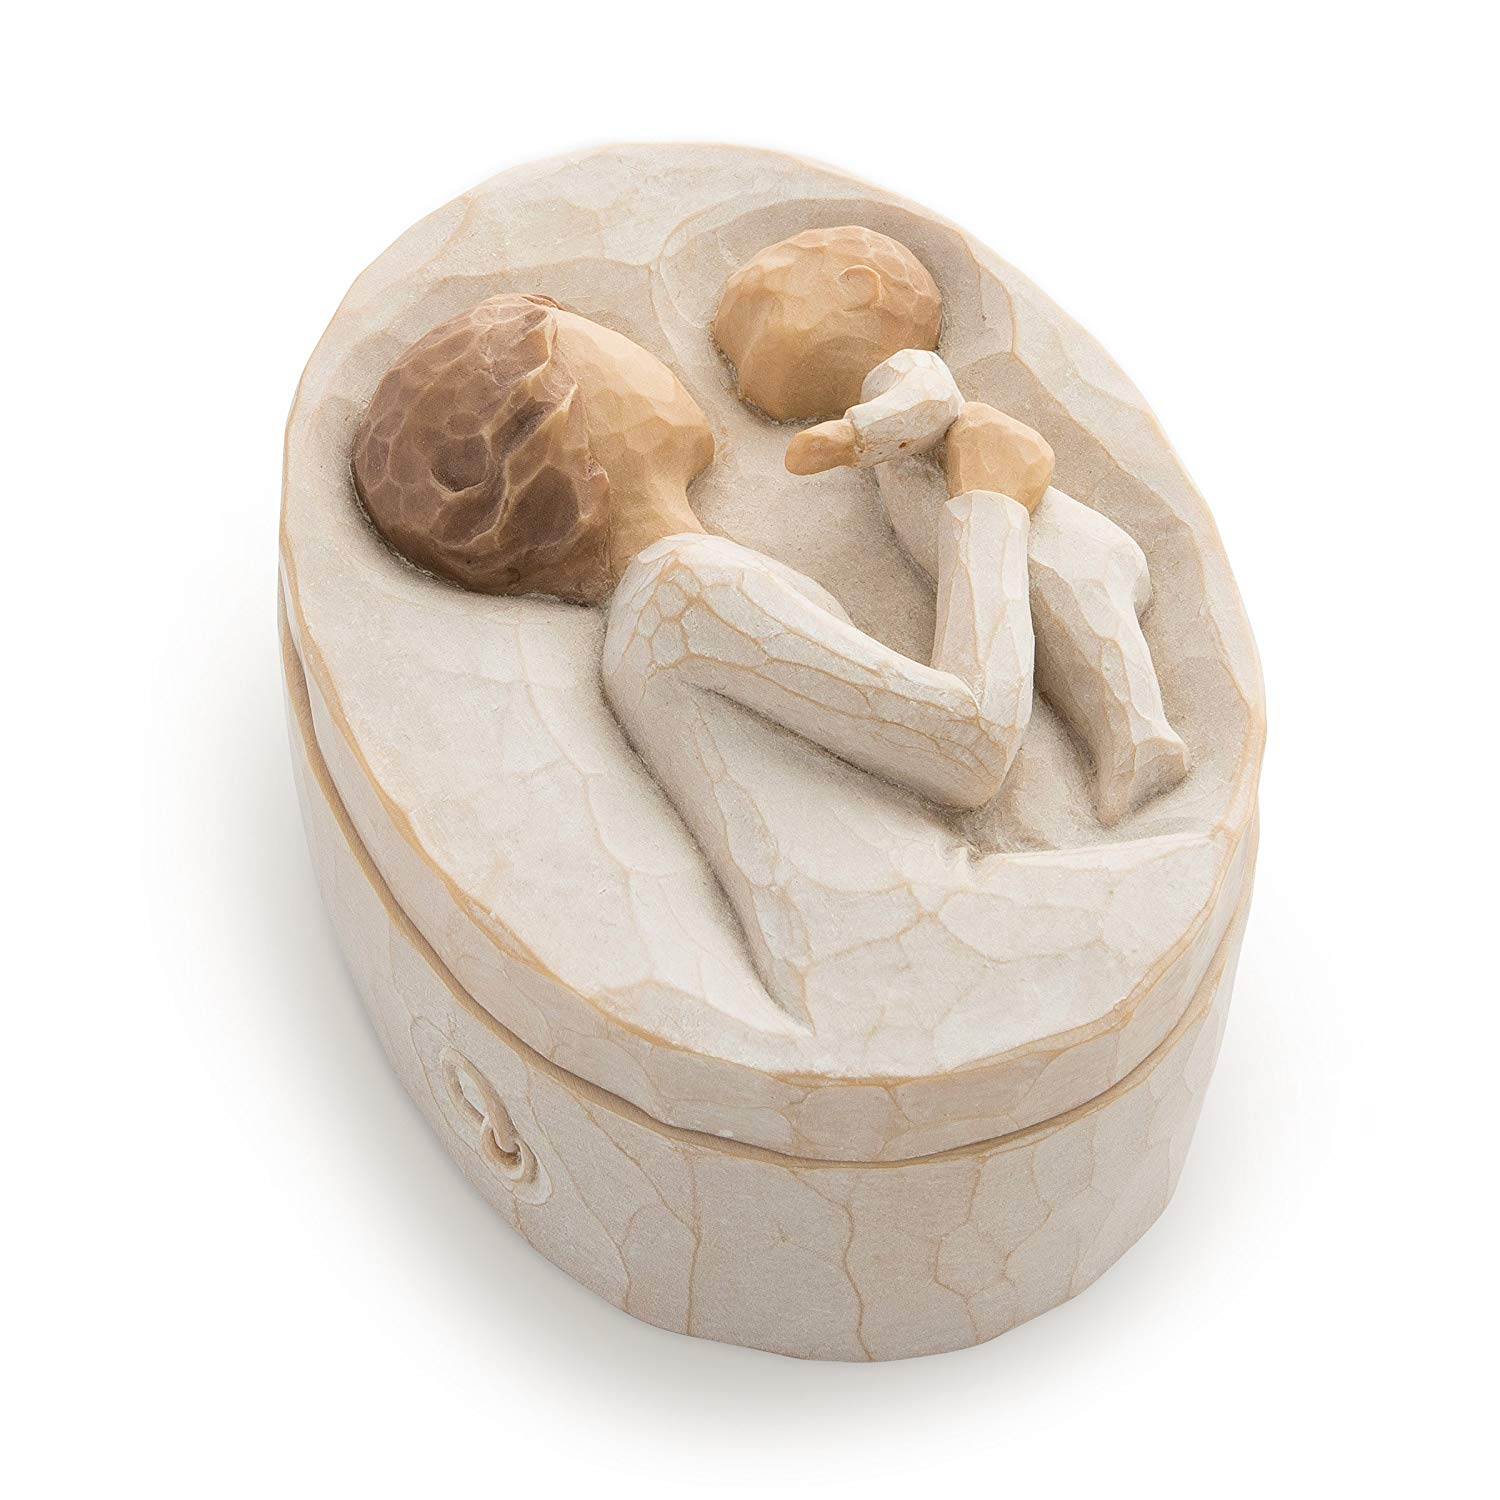 Willow tree hand painted and sculpted keepsake box